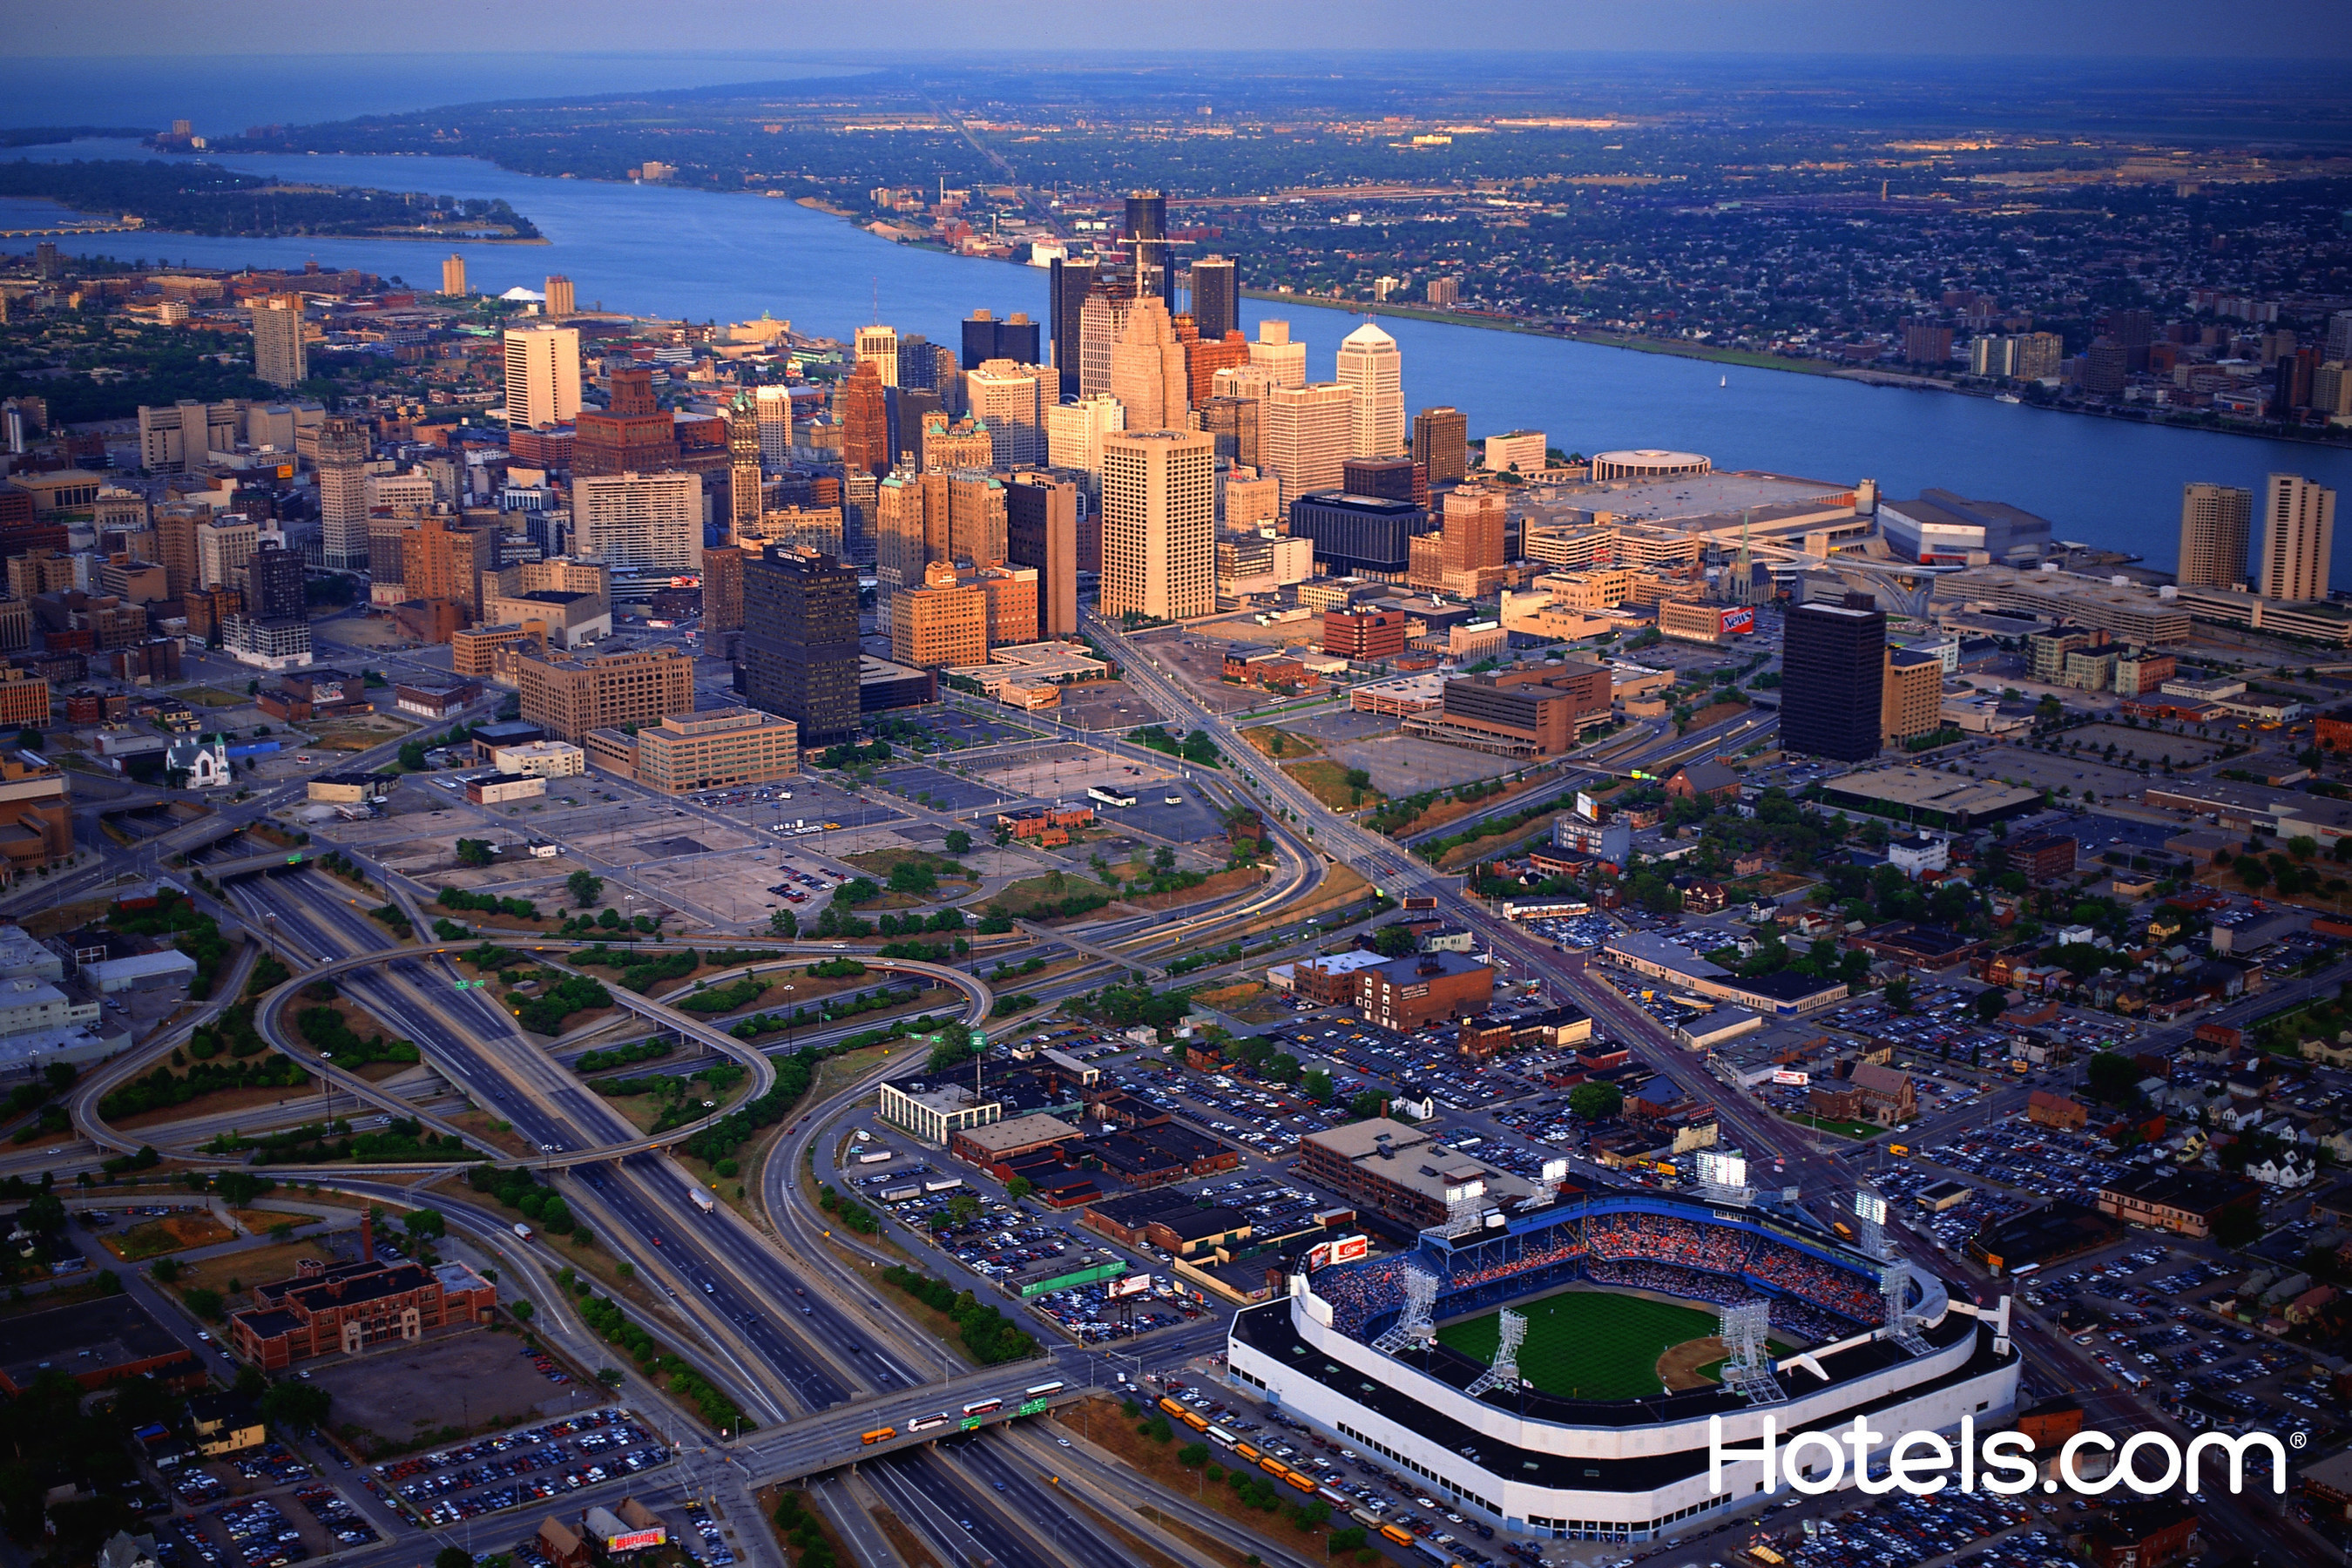 New hotel openings and the addition of new downtown entertainment and nightlife options will help the ongoing revitalization of Detroit.